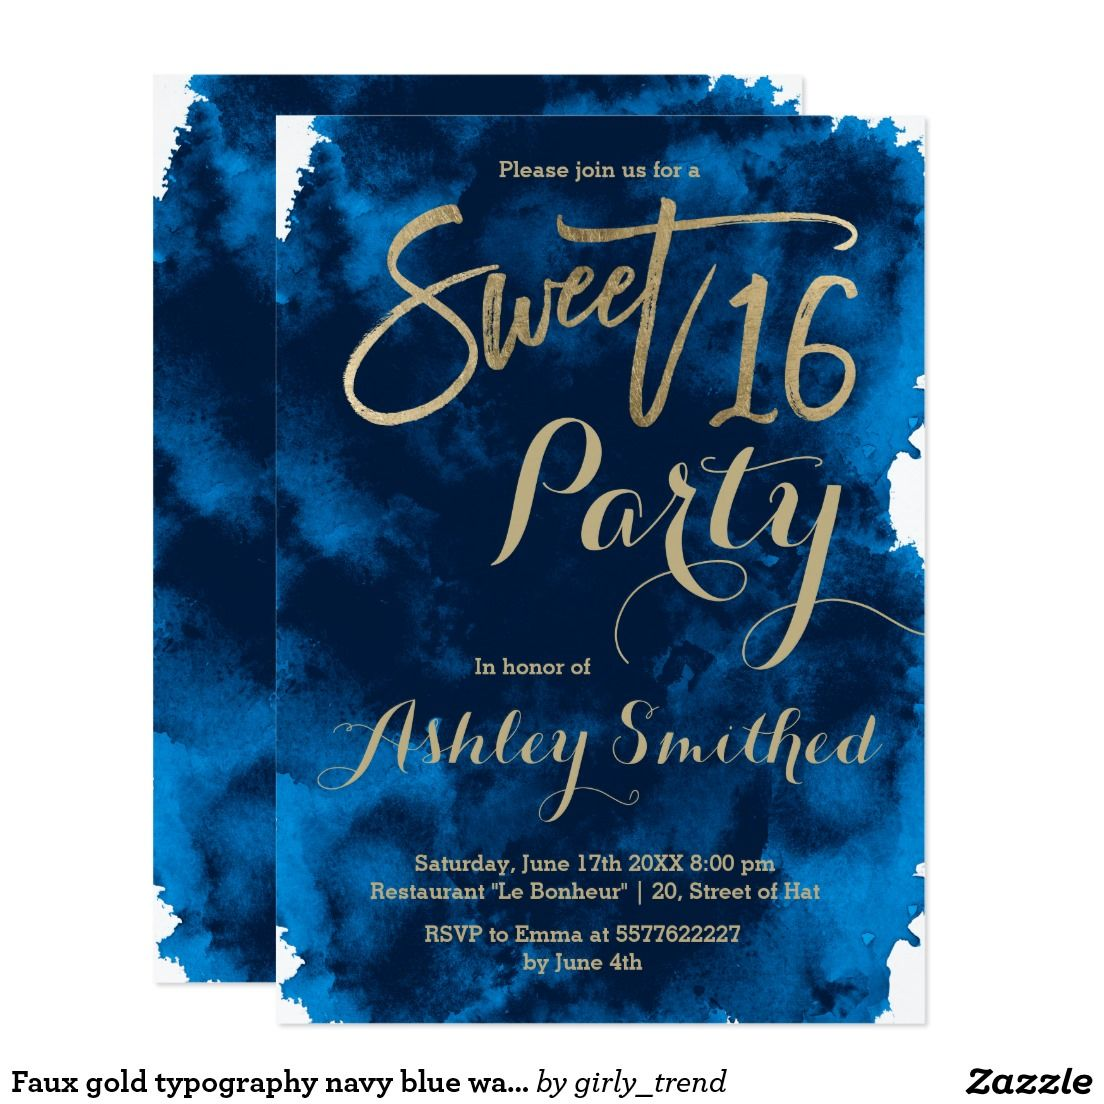 faux gold typography navy blue watercolor sweet 16 card sweet